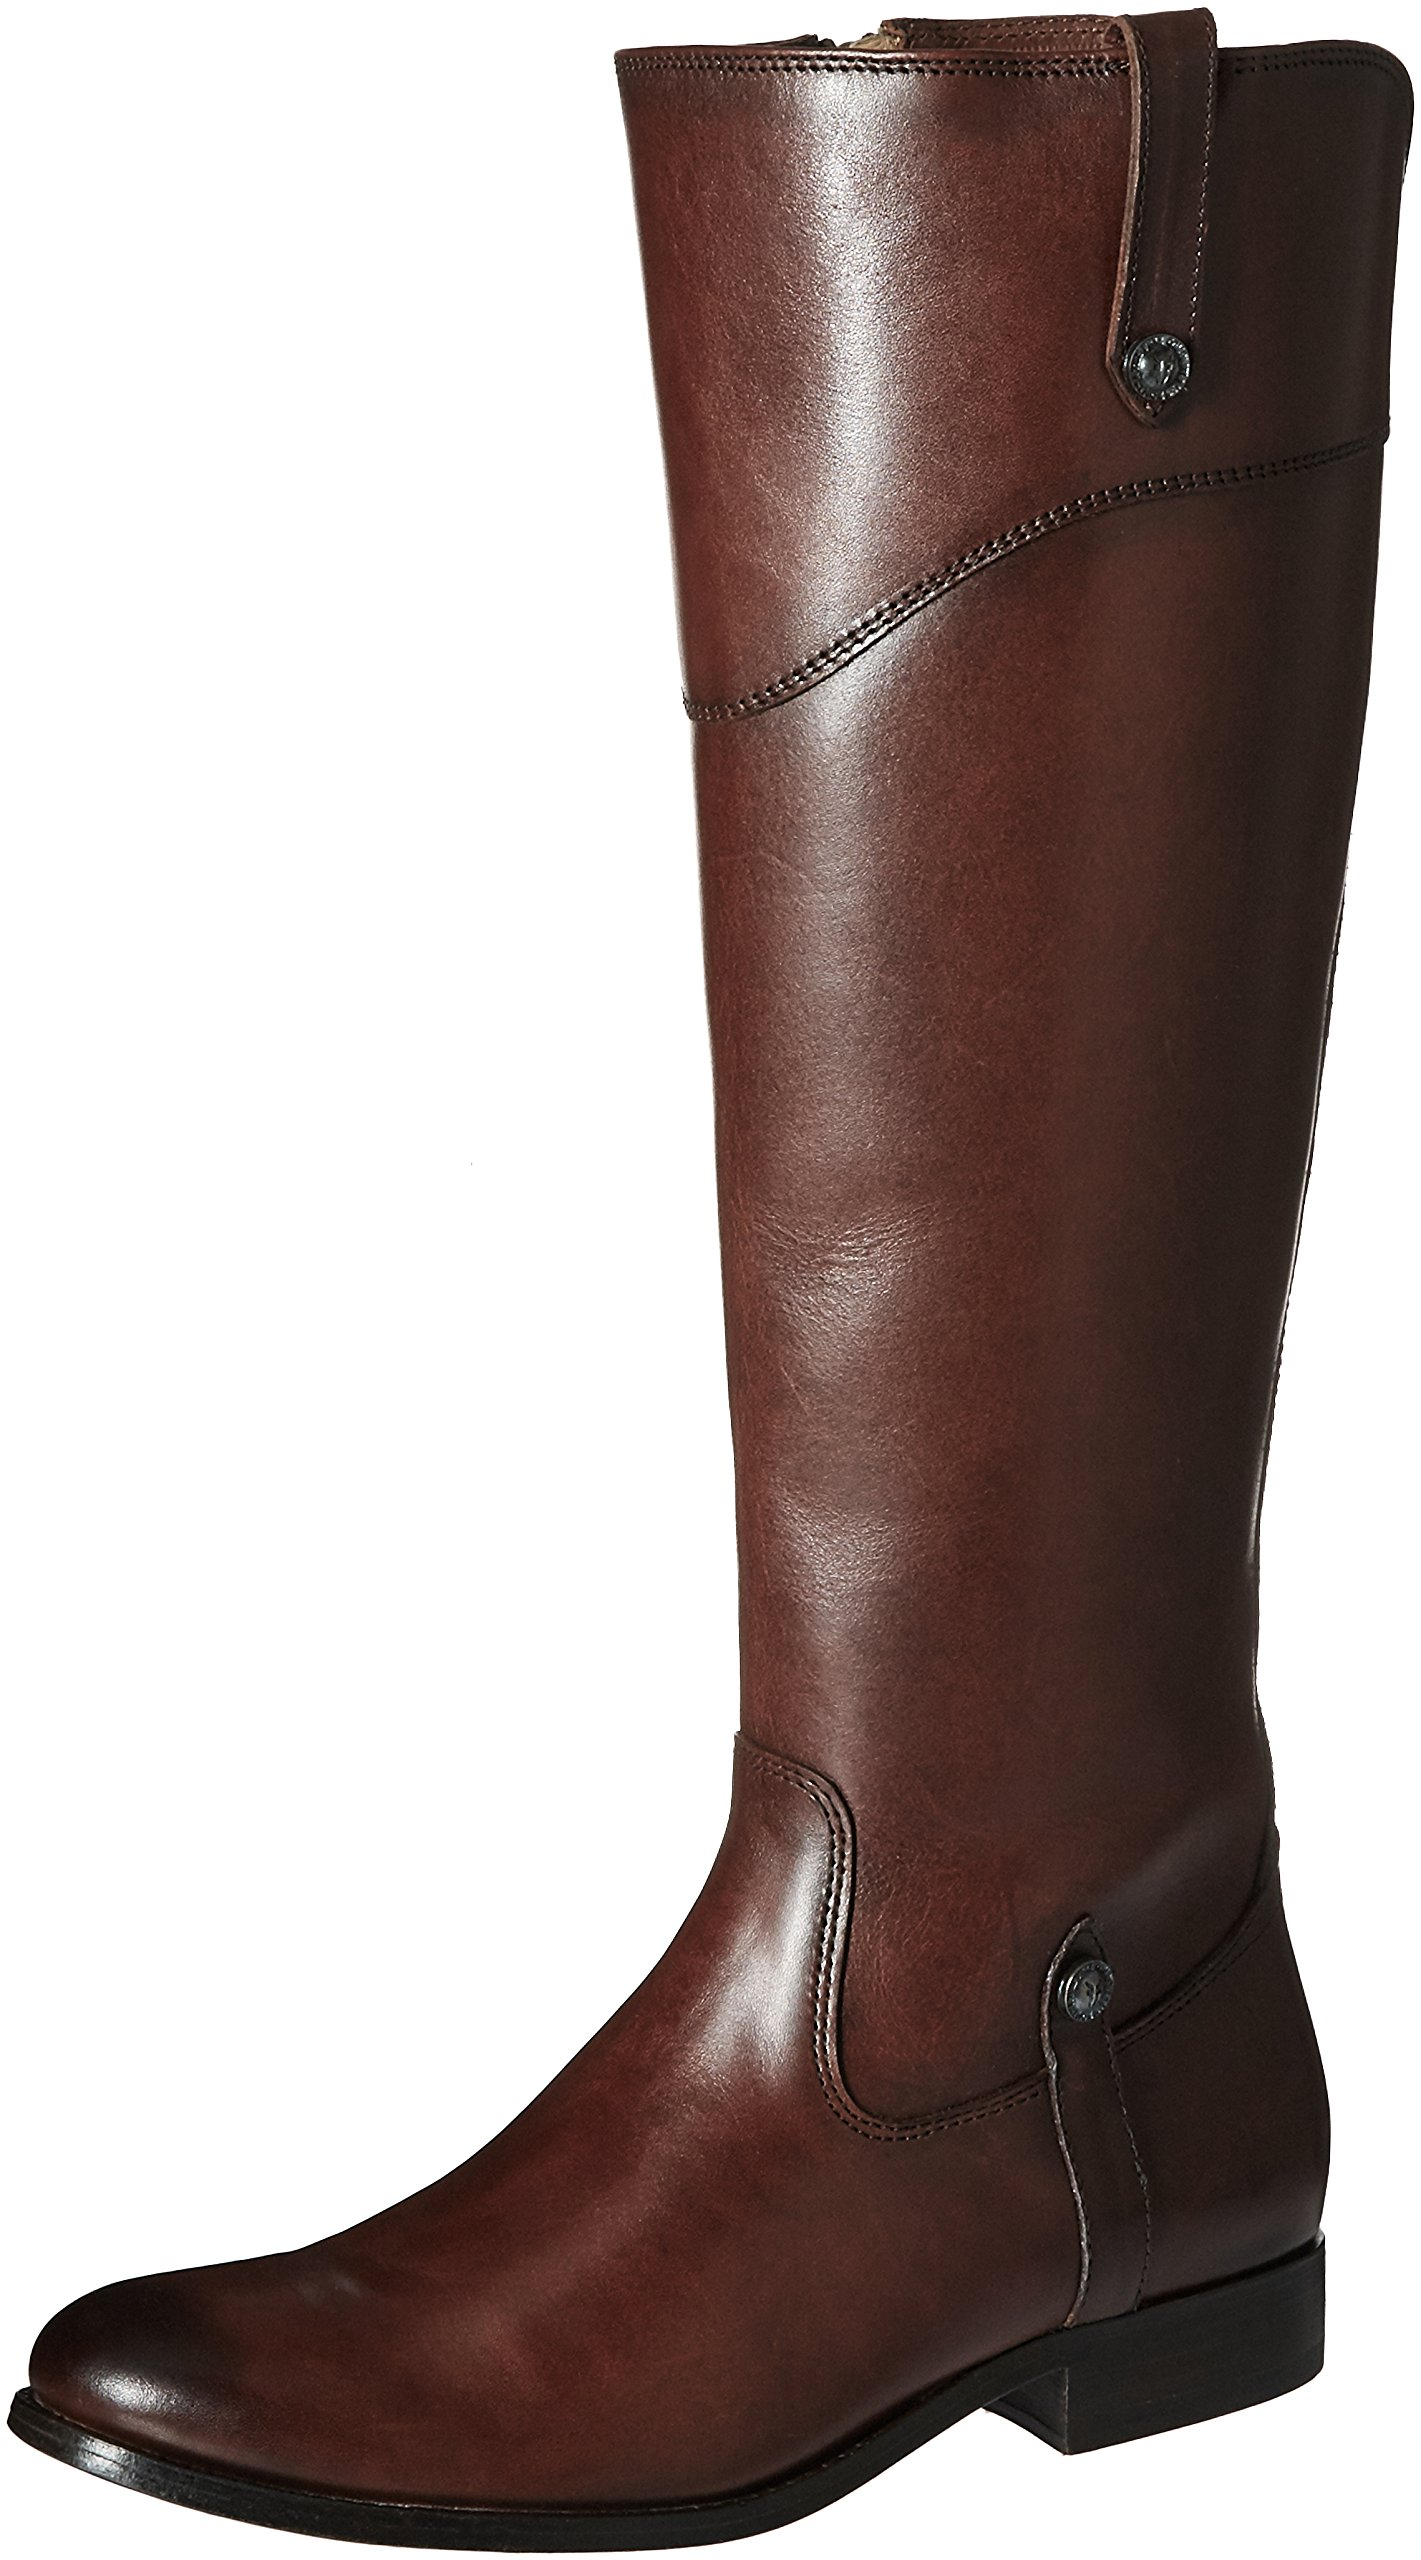 FRYE Women's Melissa Tab Tall Riding Boot, Redwood, 10 M US by FRYE